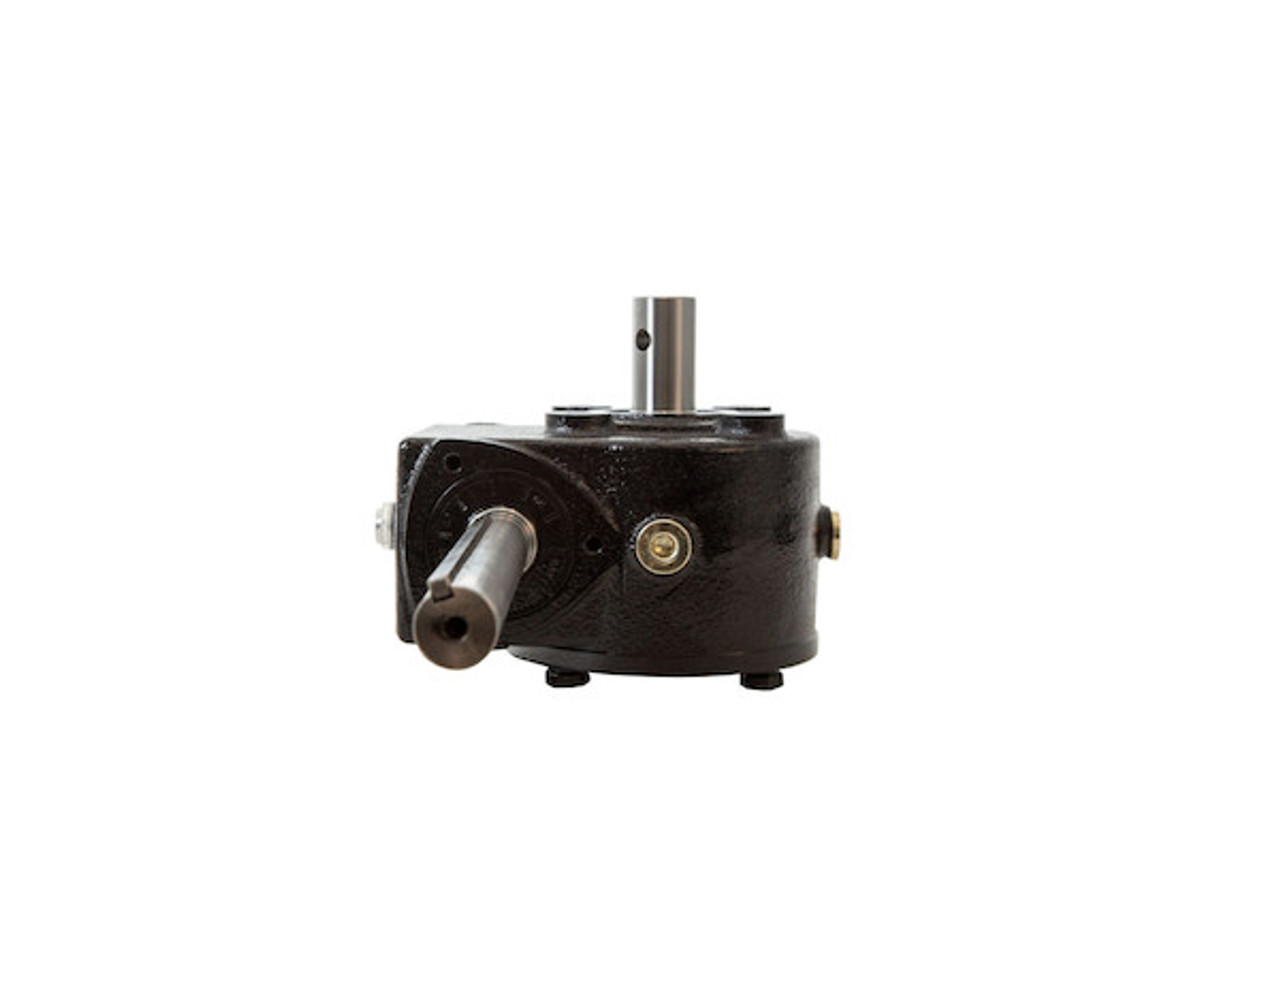 Buyers 1401200 Replacement Gearbox With A 1/4 Inch Straight Keyway for SaltDogg Spreader  3